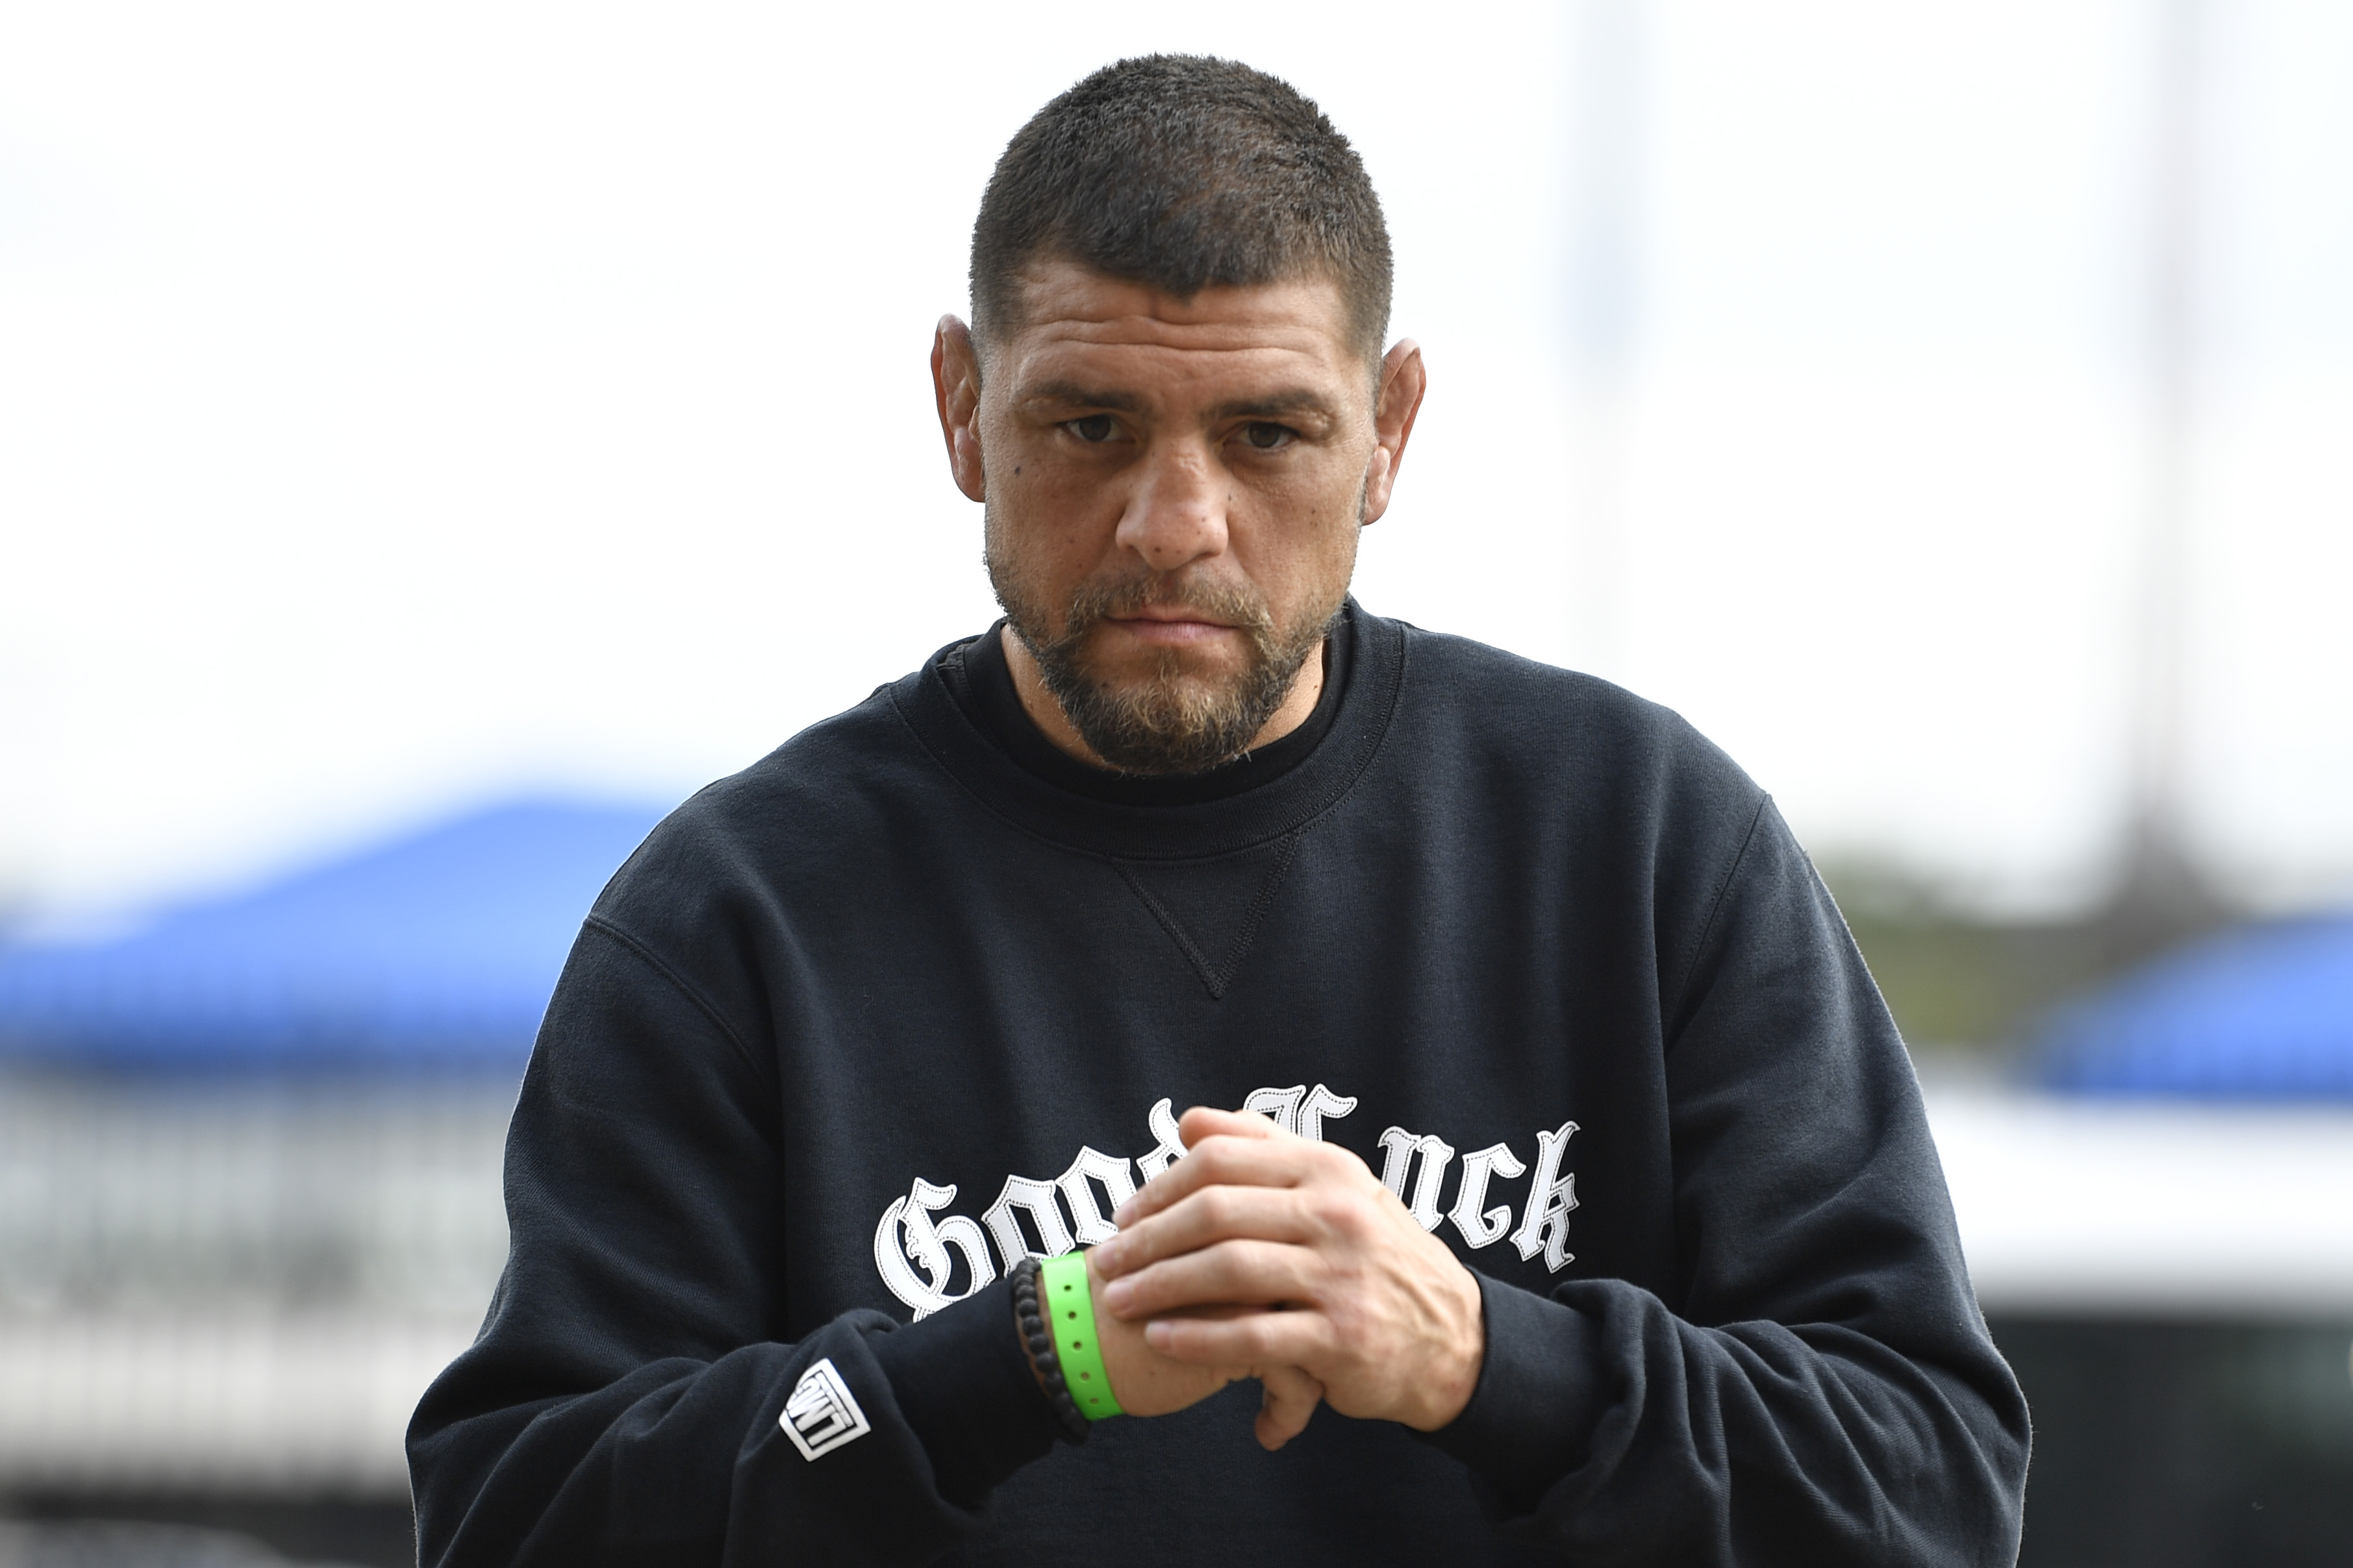 Nick Diaz's has recently partnered up with adult site Stripchat.